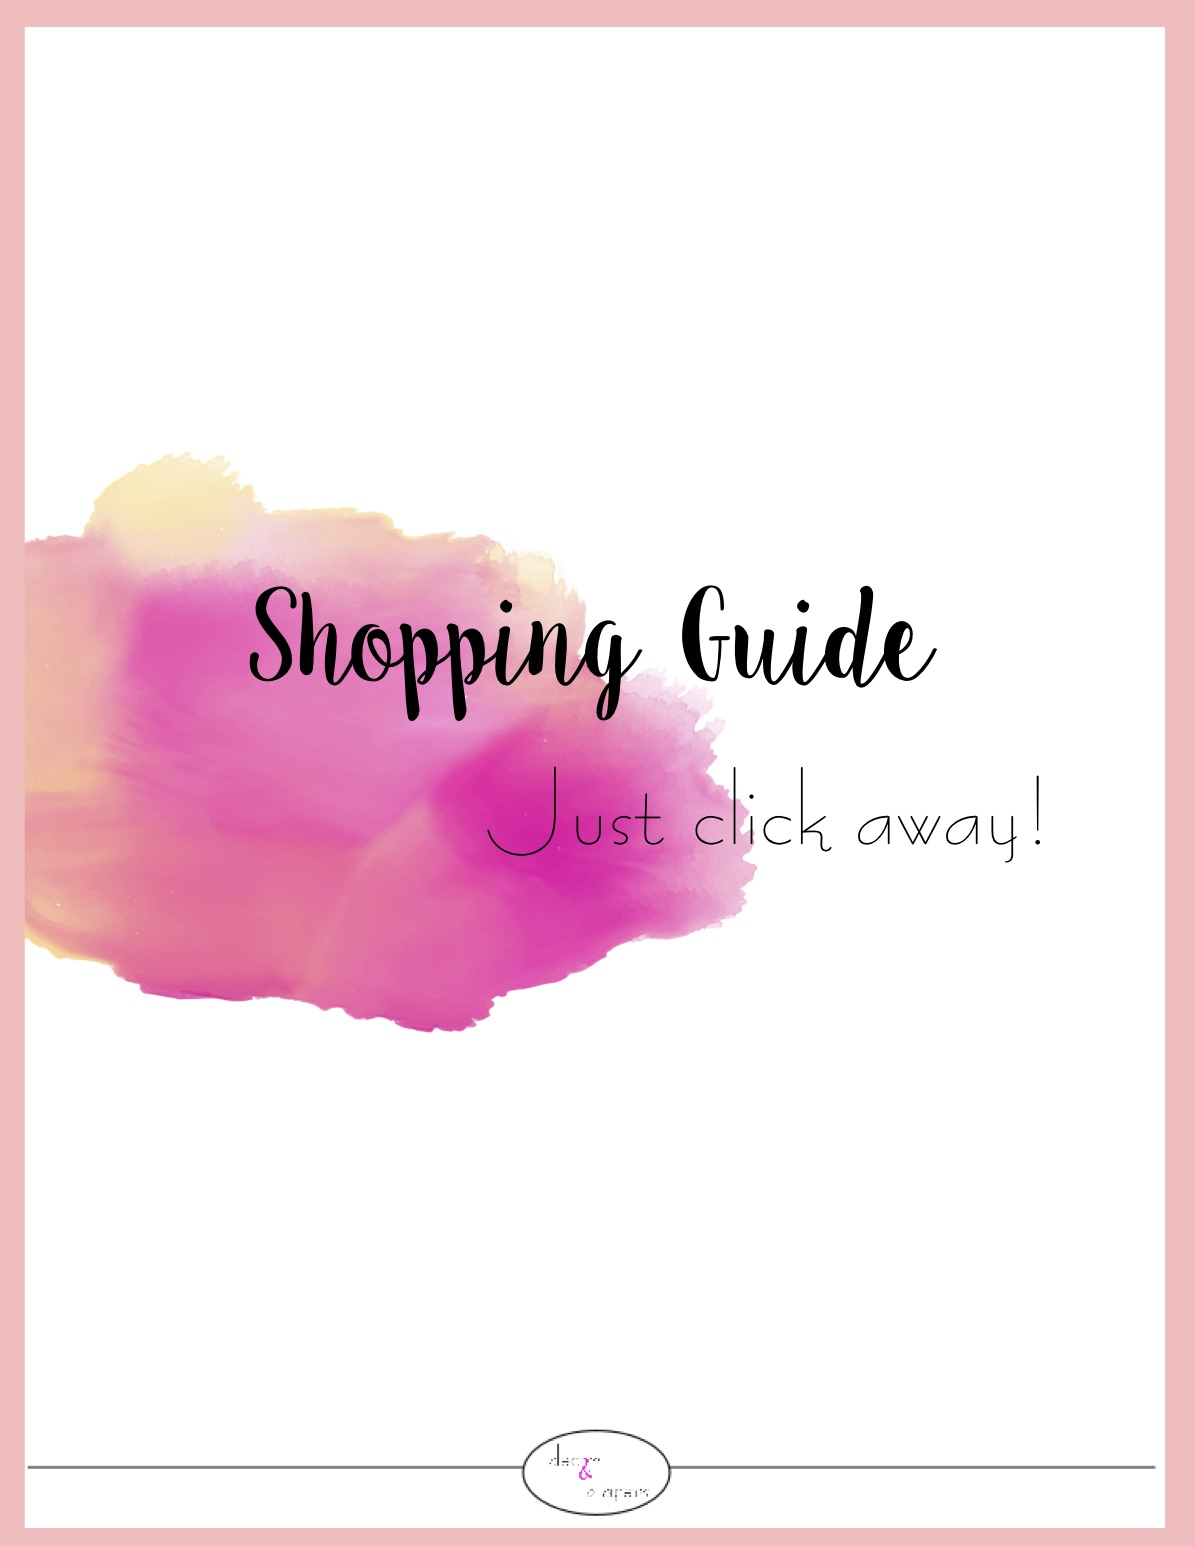 Shopping Guide - An easy-to-use form to purchase your new room- YAY. Just click on the link to purchase each item online. (You can even find some items at your local retailer, if you feel like hopping in the car!)